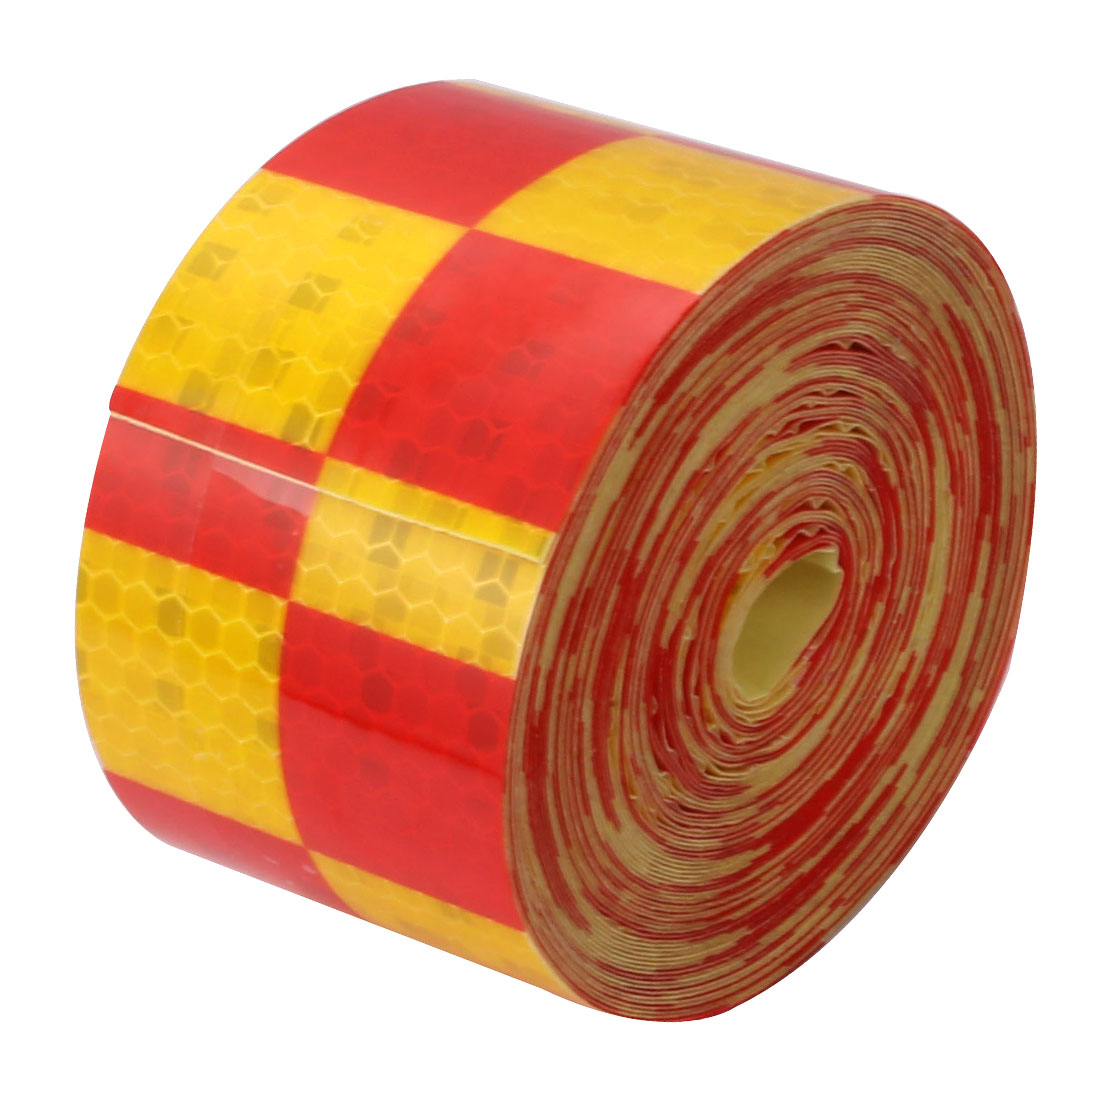 5cm Wide 10M Length Single Sided Adhesive Reflective Warning Tape Red Yellow